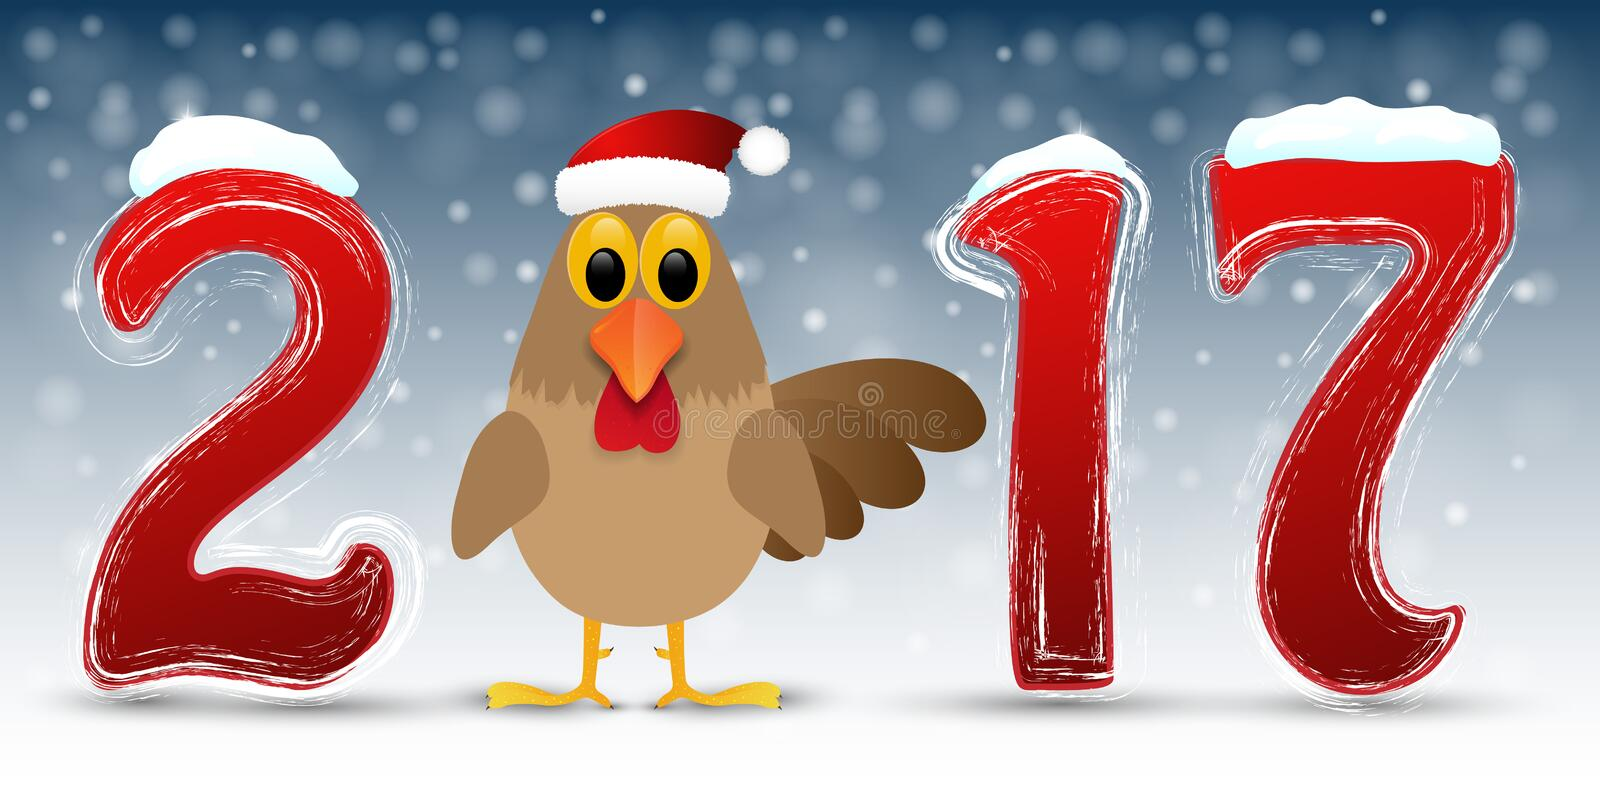 Happy New Year background with rooster. vector illustration